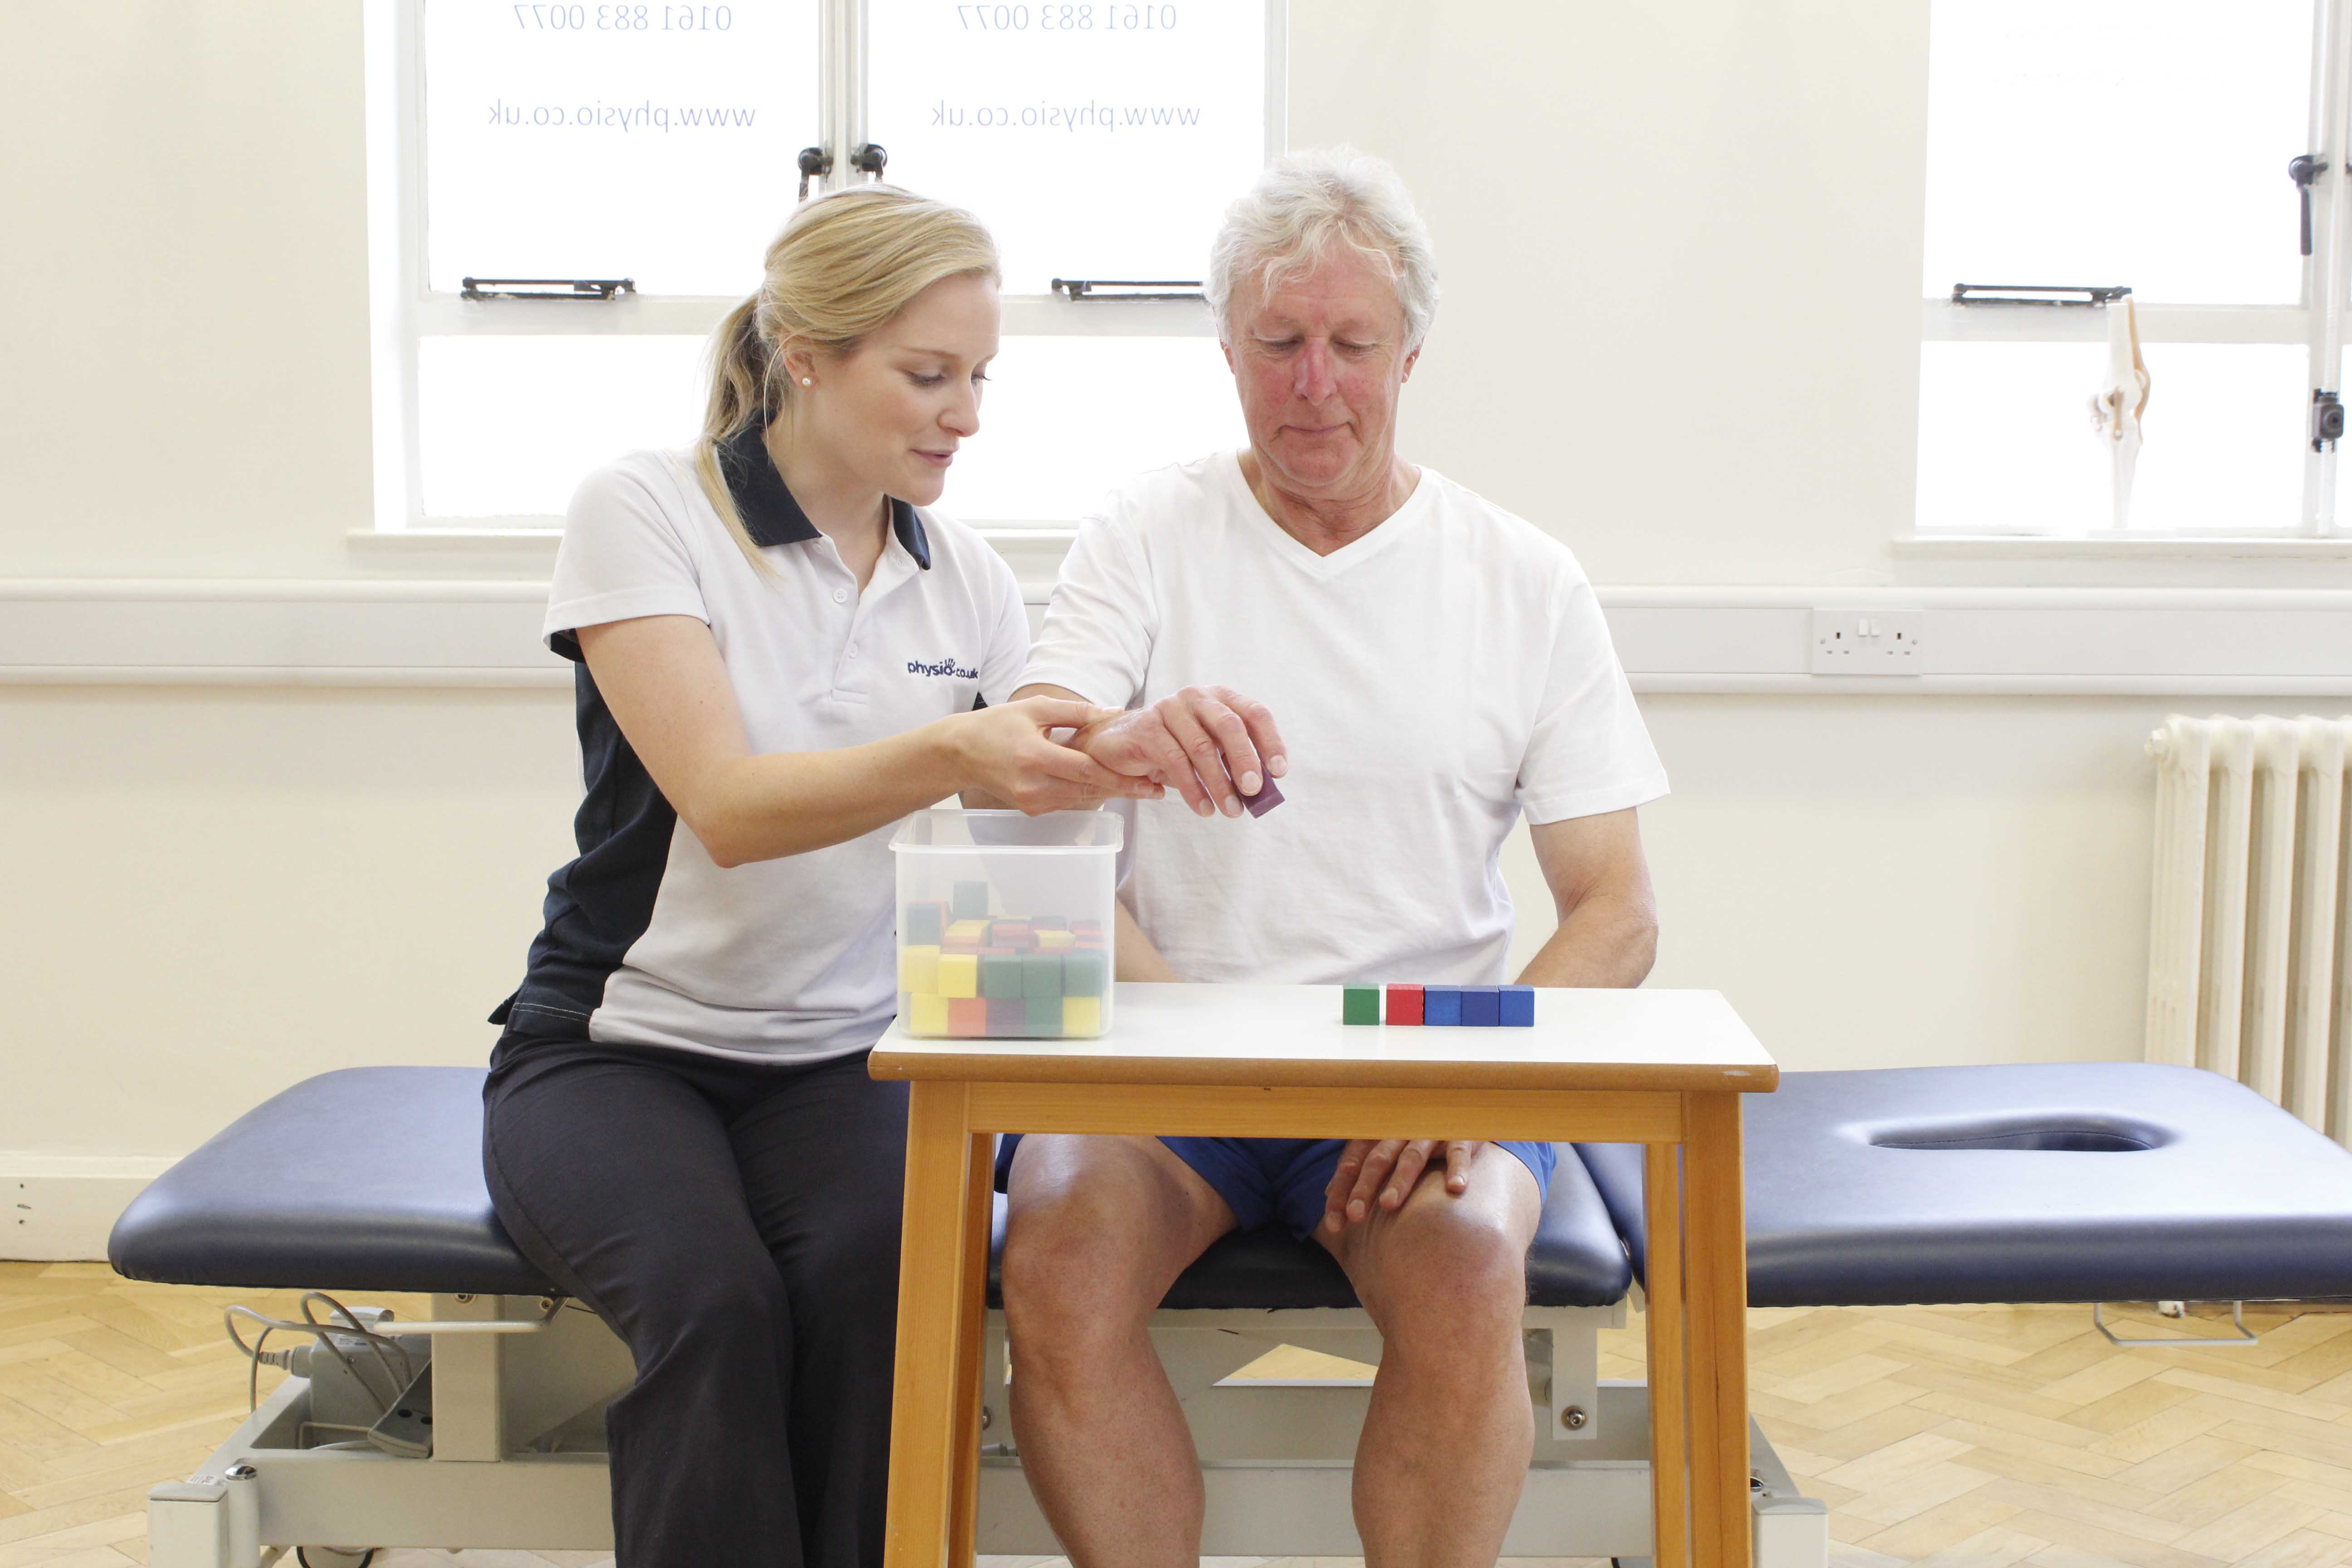 Fine motor skill exercises supervised by a specilaist neurological physiotherapist